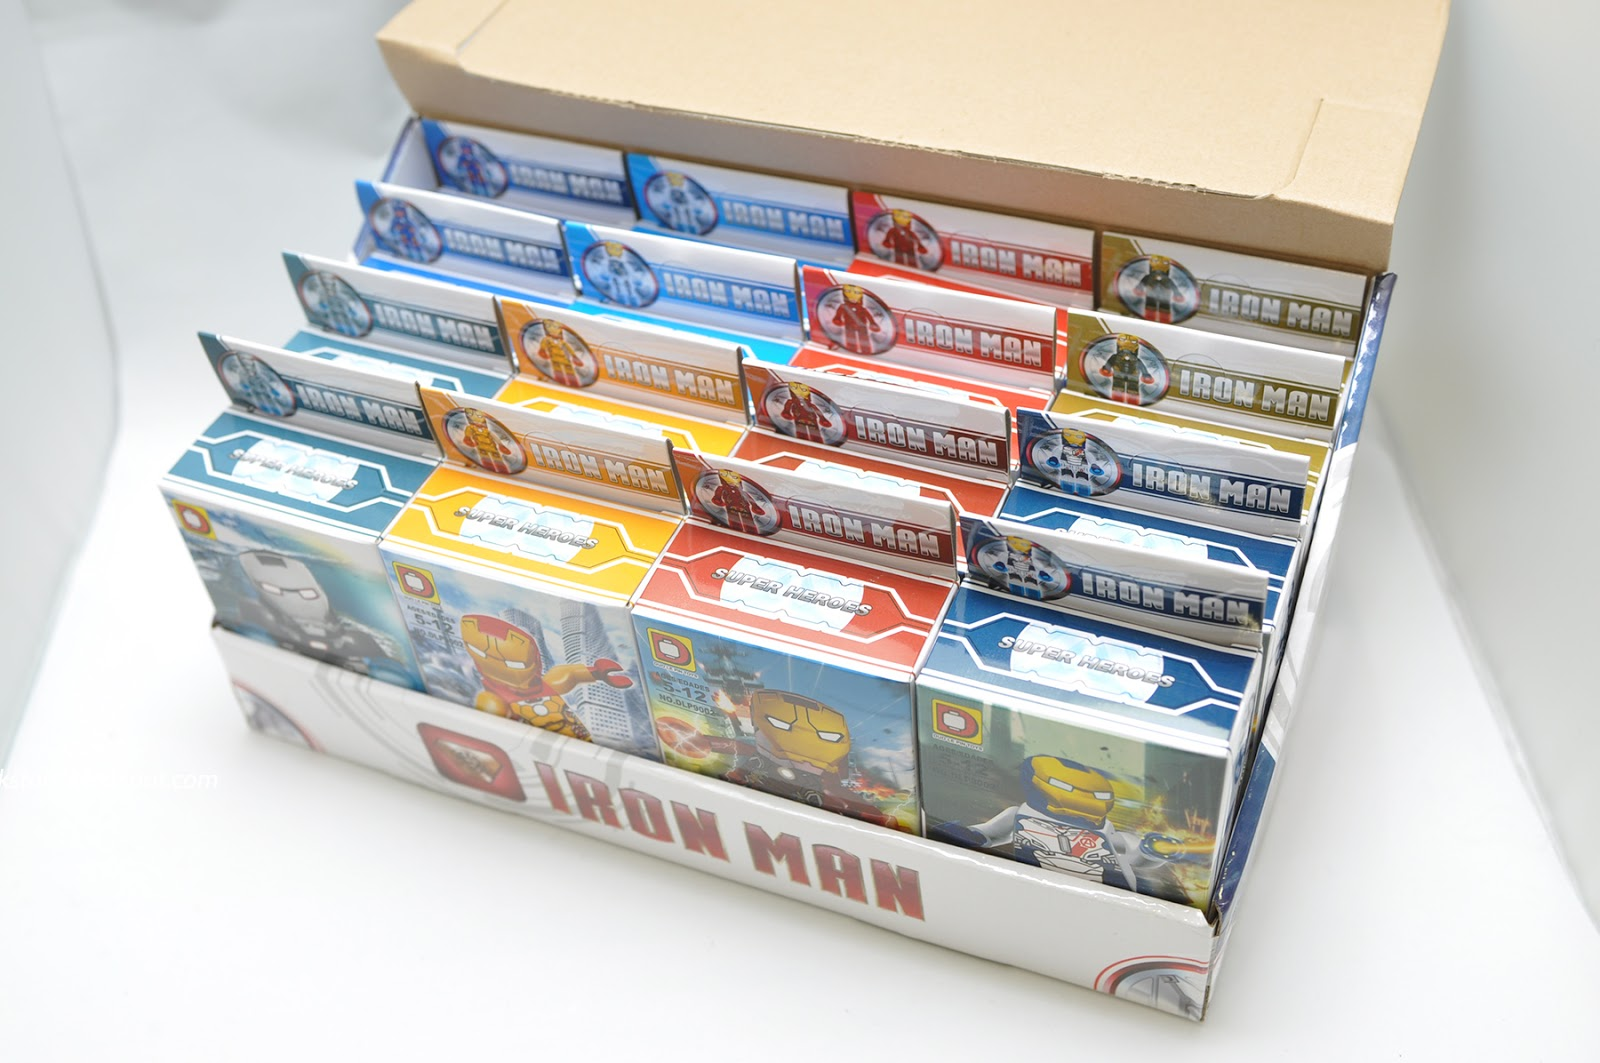 lego iron man minifigures set by duo le pin just like their avengers 2 age of ultron lego minifigures set dlp9005 you can get 2 complete set set bootleg iron man 2 starring